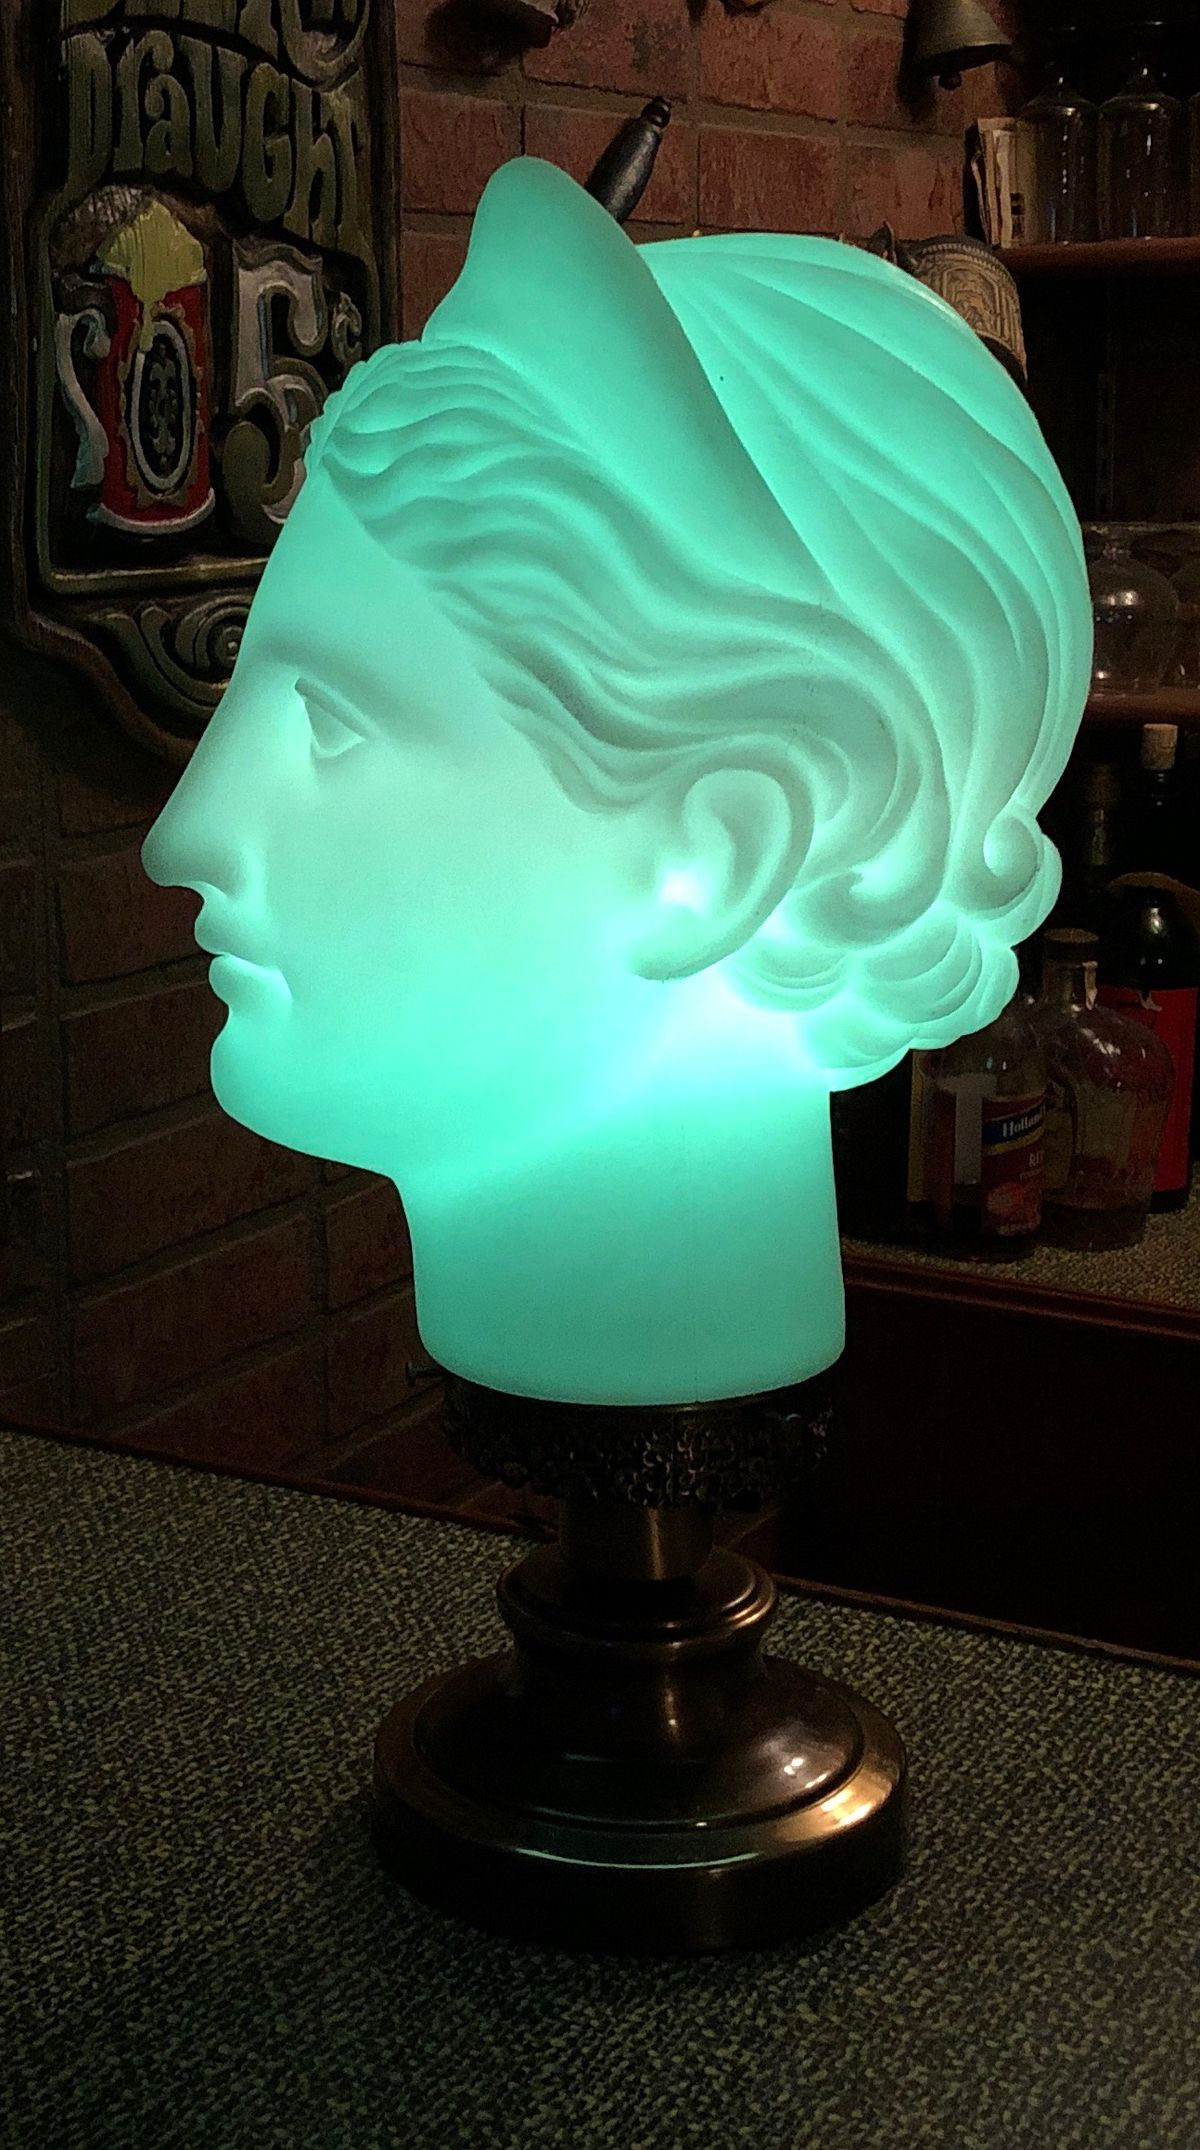 William Lange has also designed a lamp that is the head of a Grecian statue.